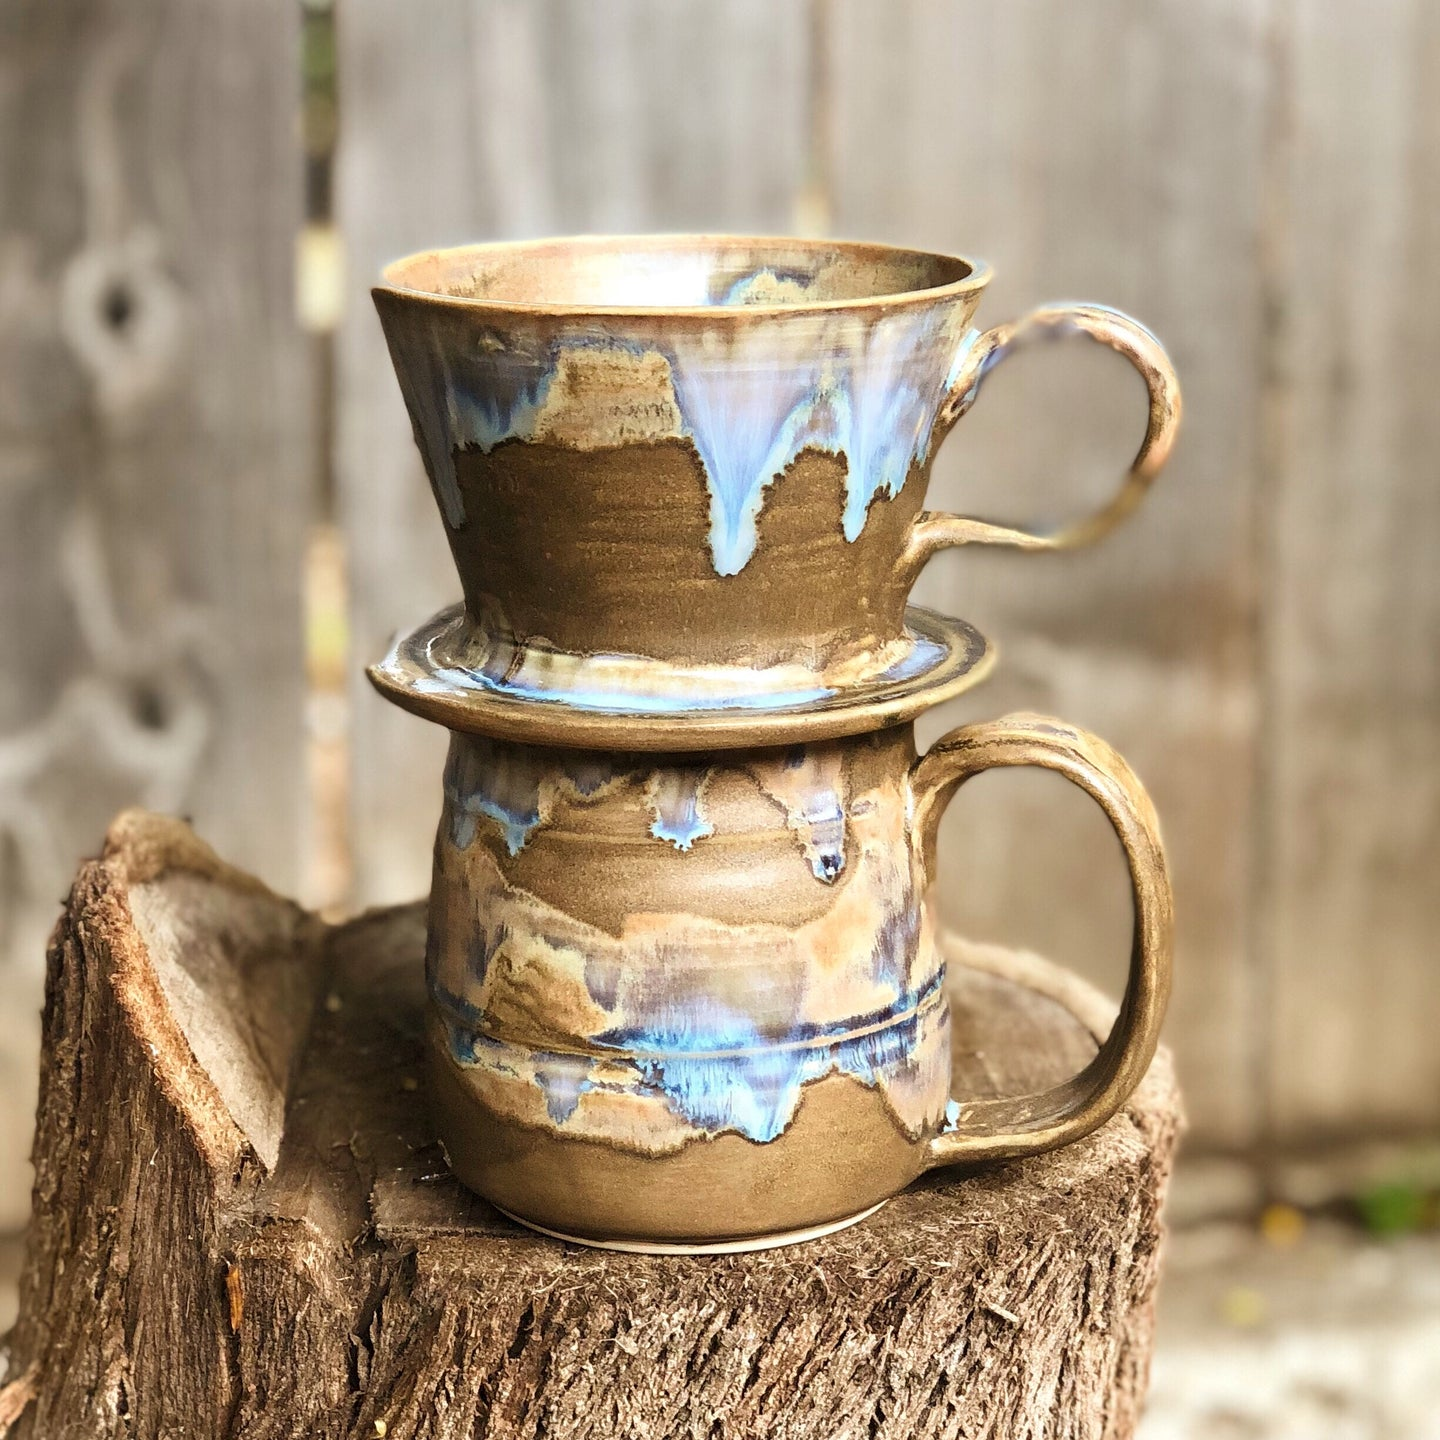 Chocolate Lava Ceramic Hand Pour Coffee Dripper and  Mug Set 15 oz - Hsiaowan Studios Handmade Ceramics Pottery